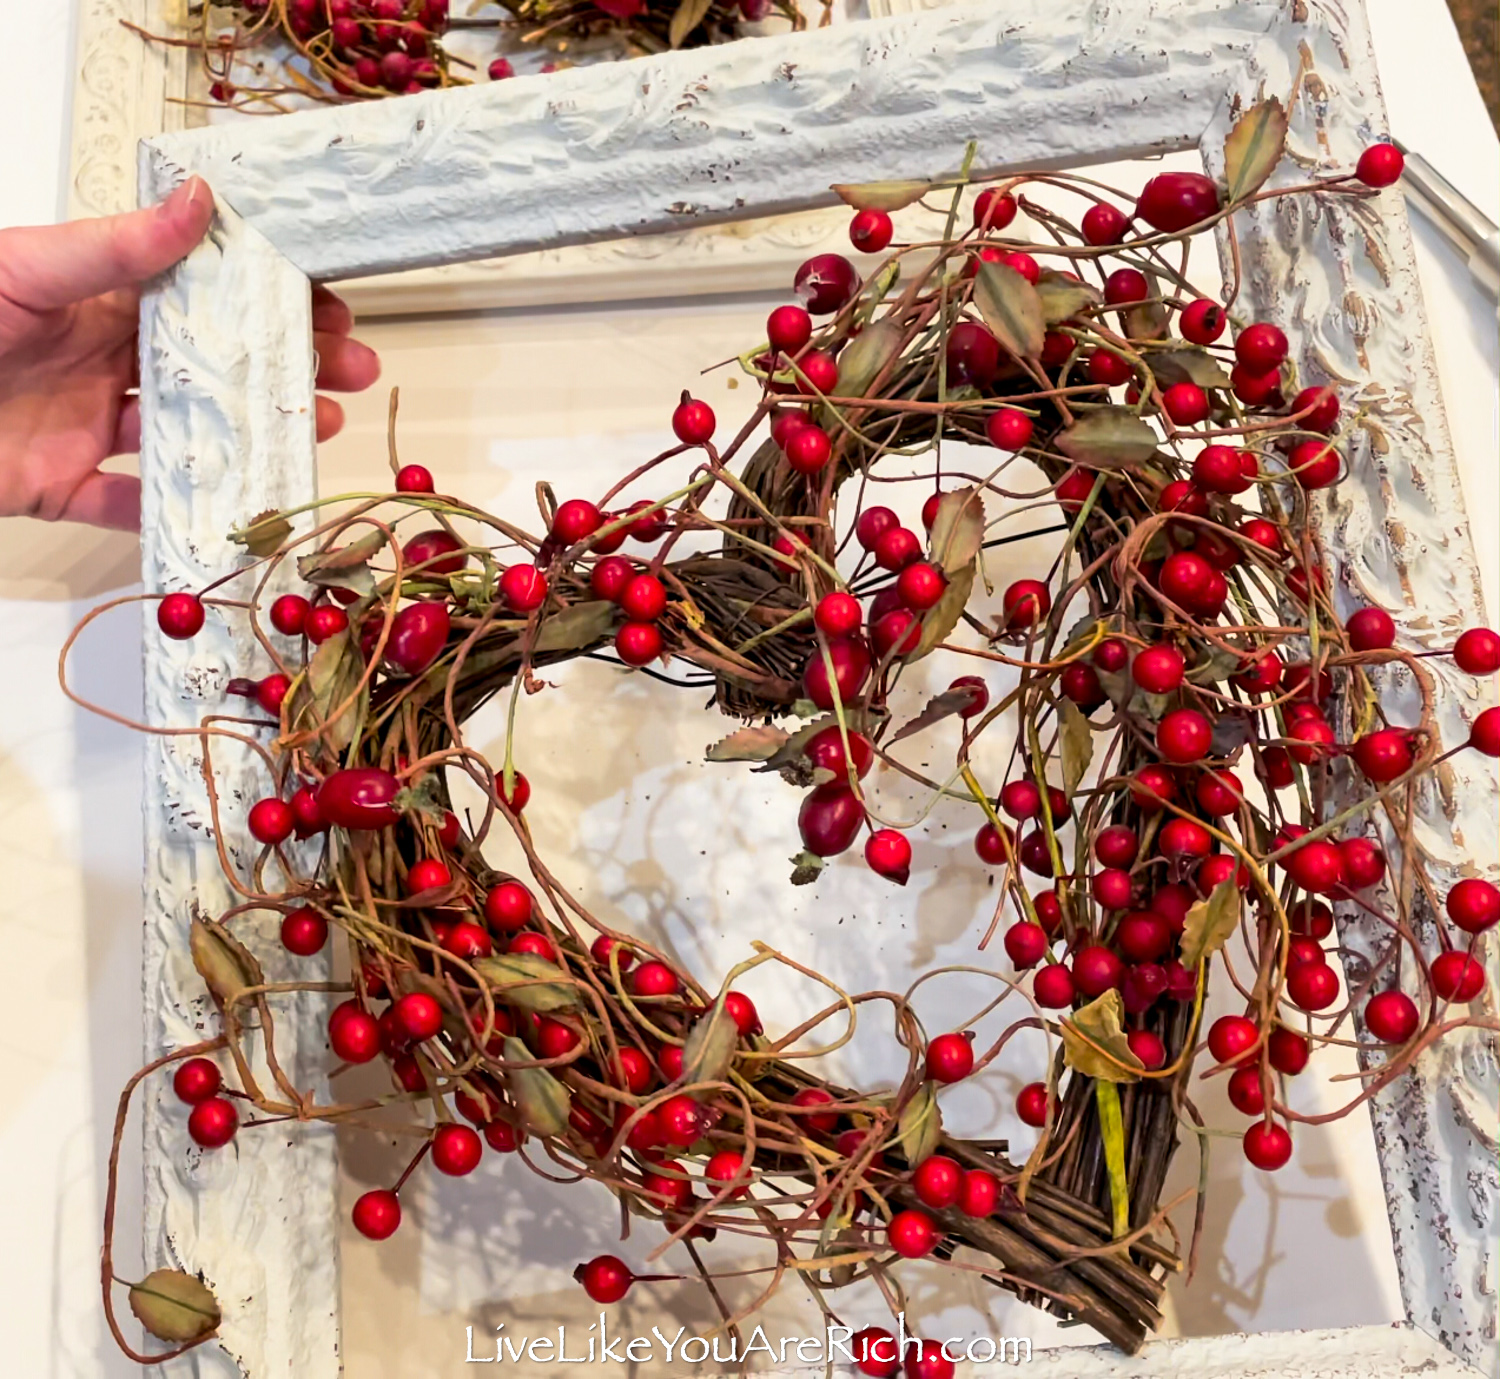 Berry Heart Wreath in a Vintage Frame on display